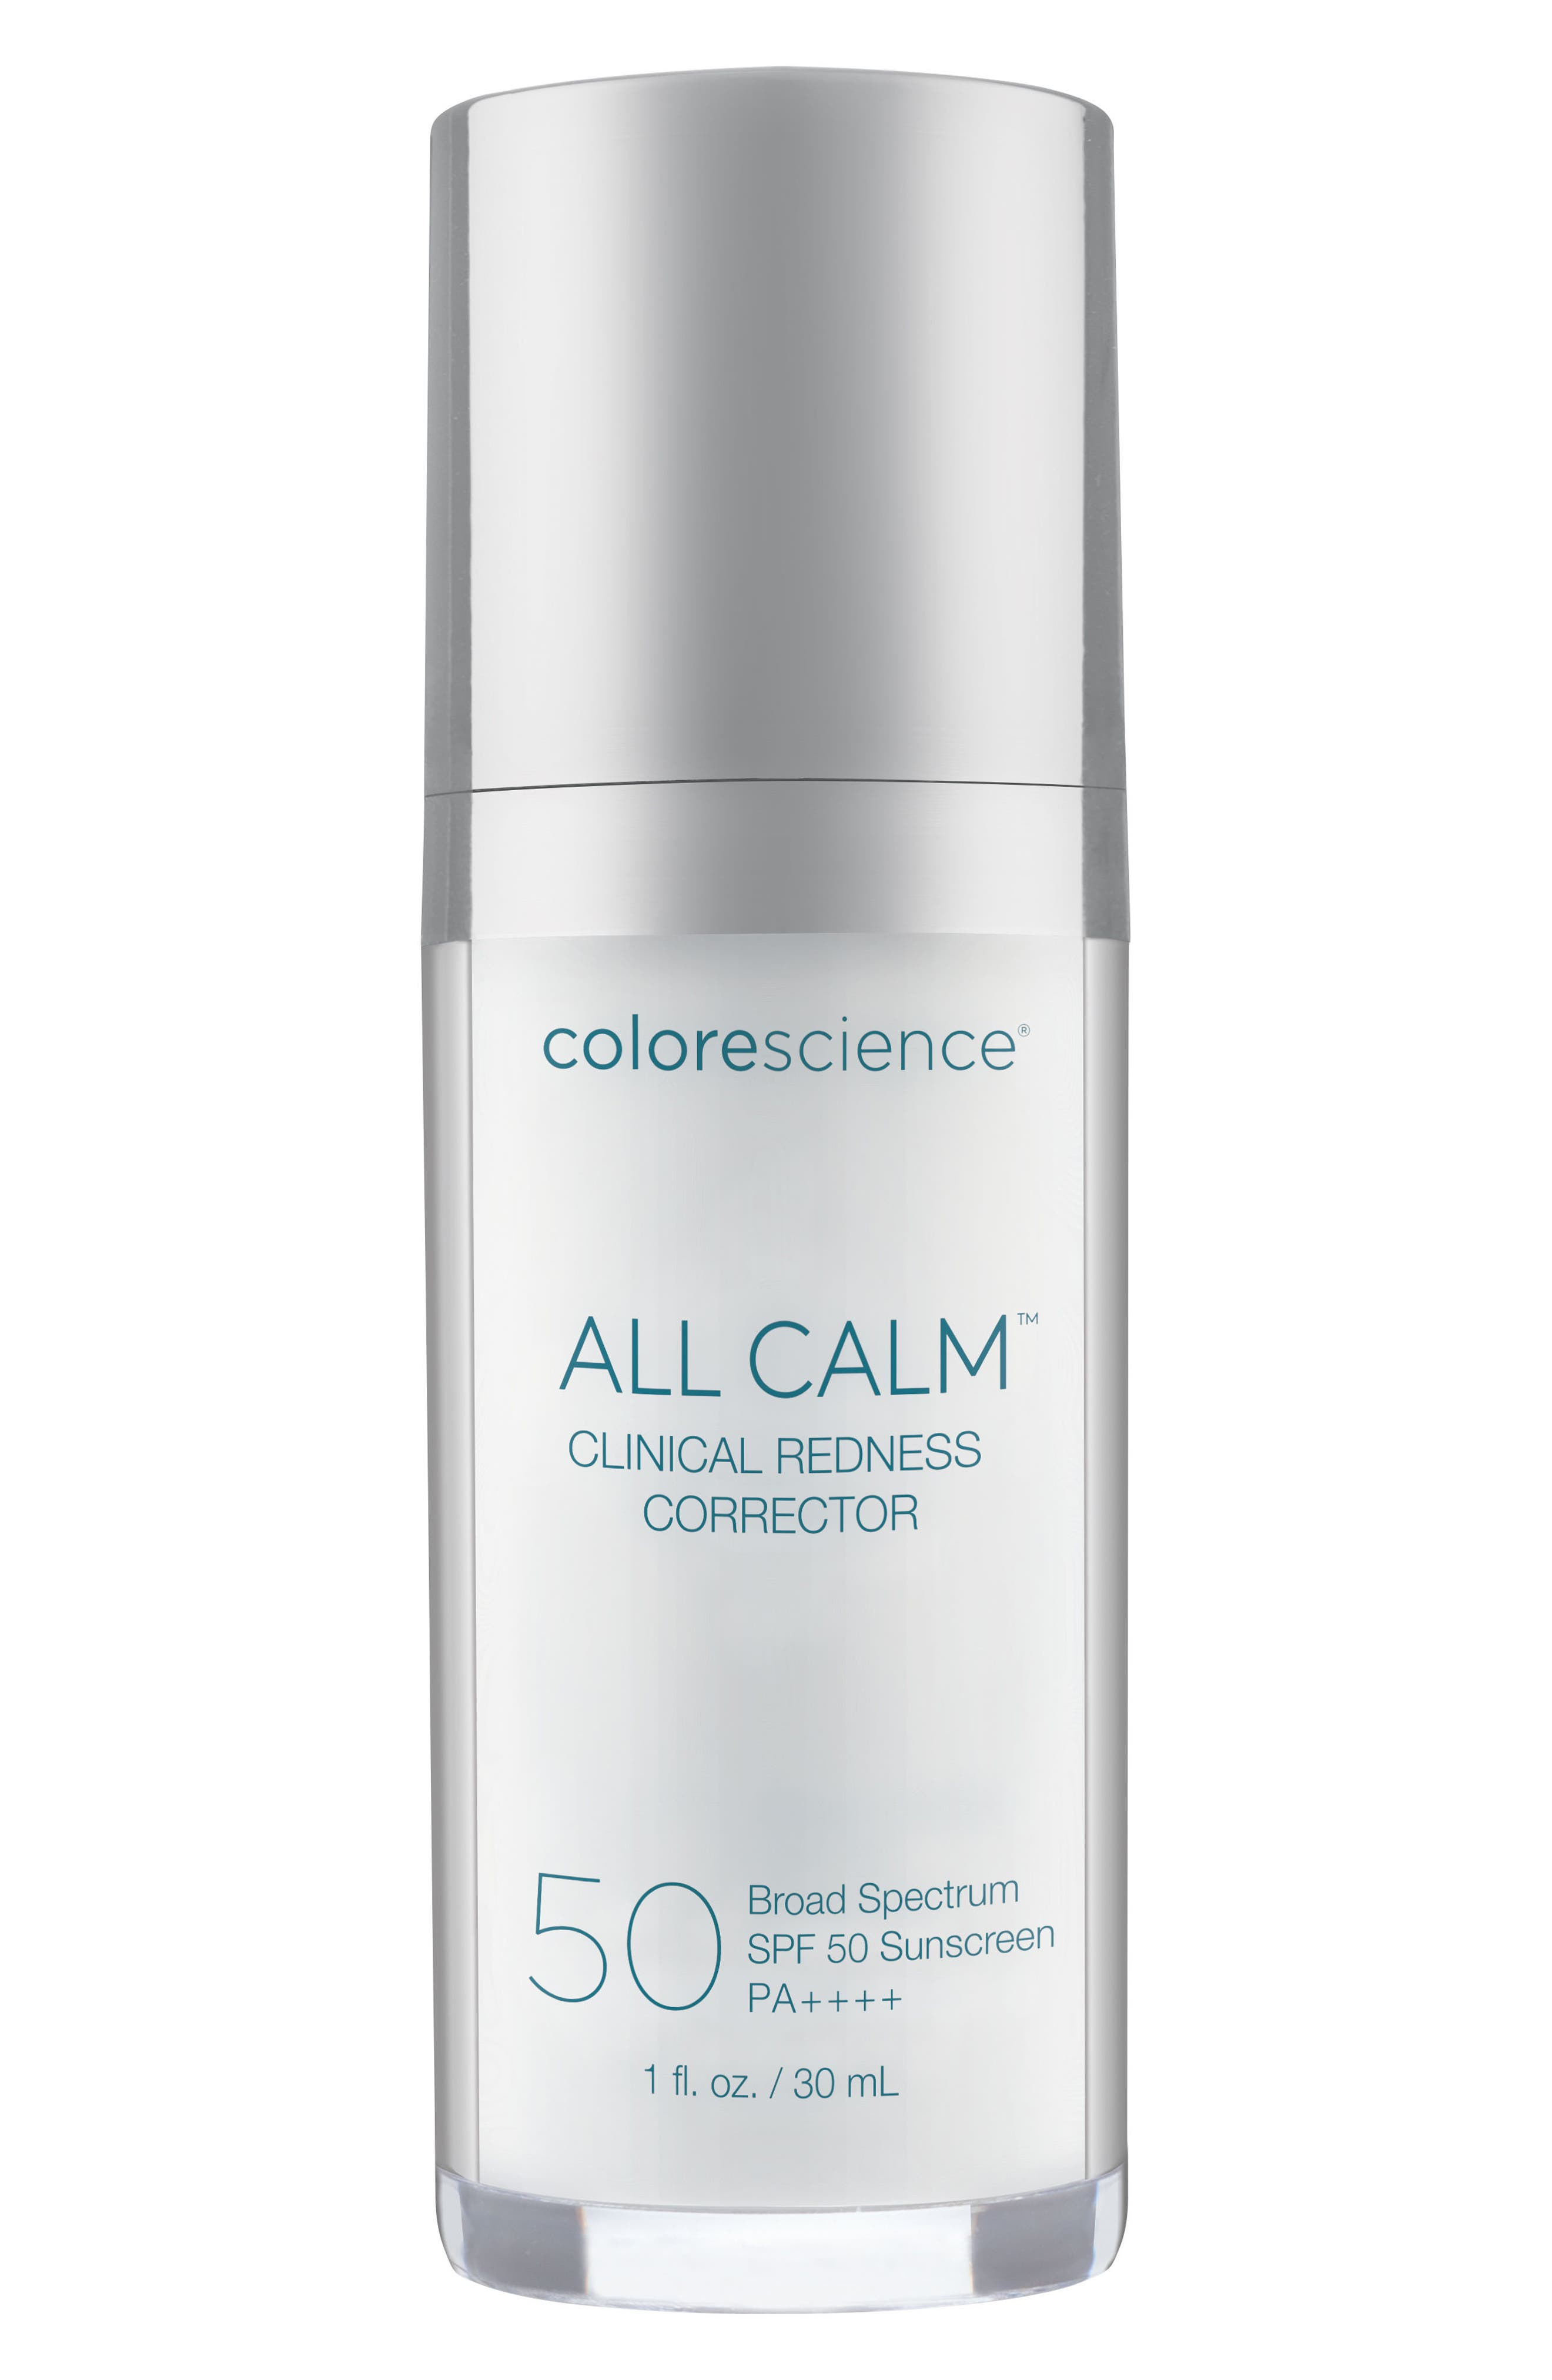 Colorescience® All Calm™ Clinical Redness Corrector Broad Spectrum SPF 50 PA++++